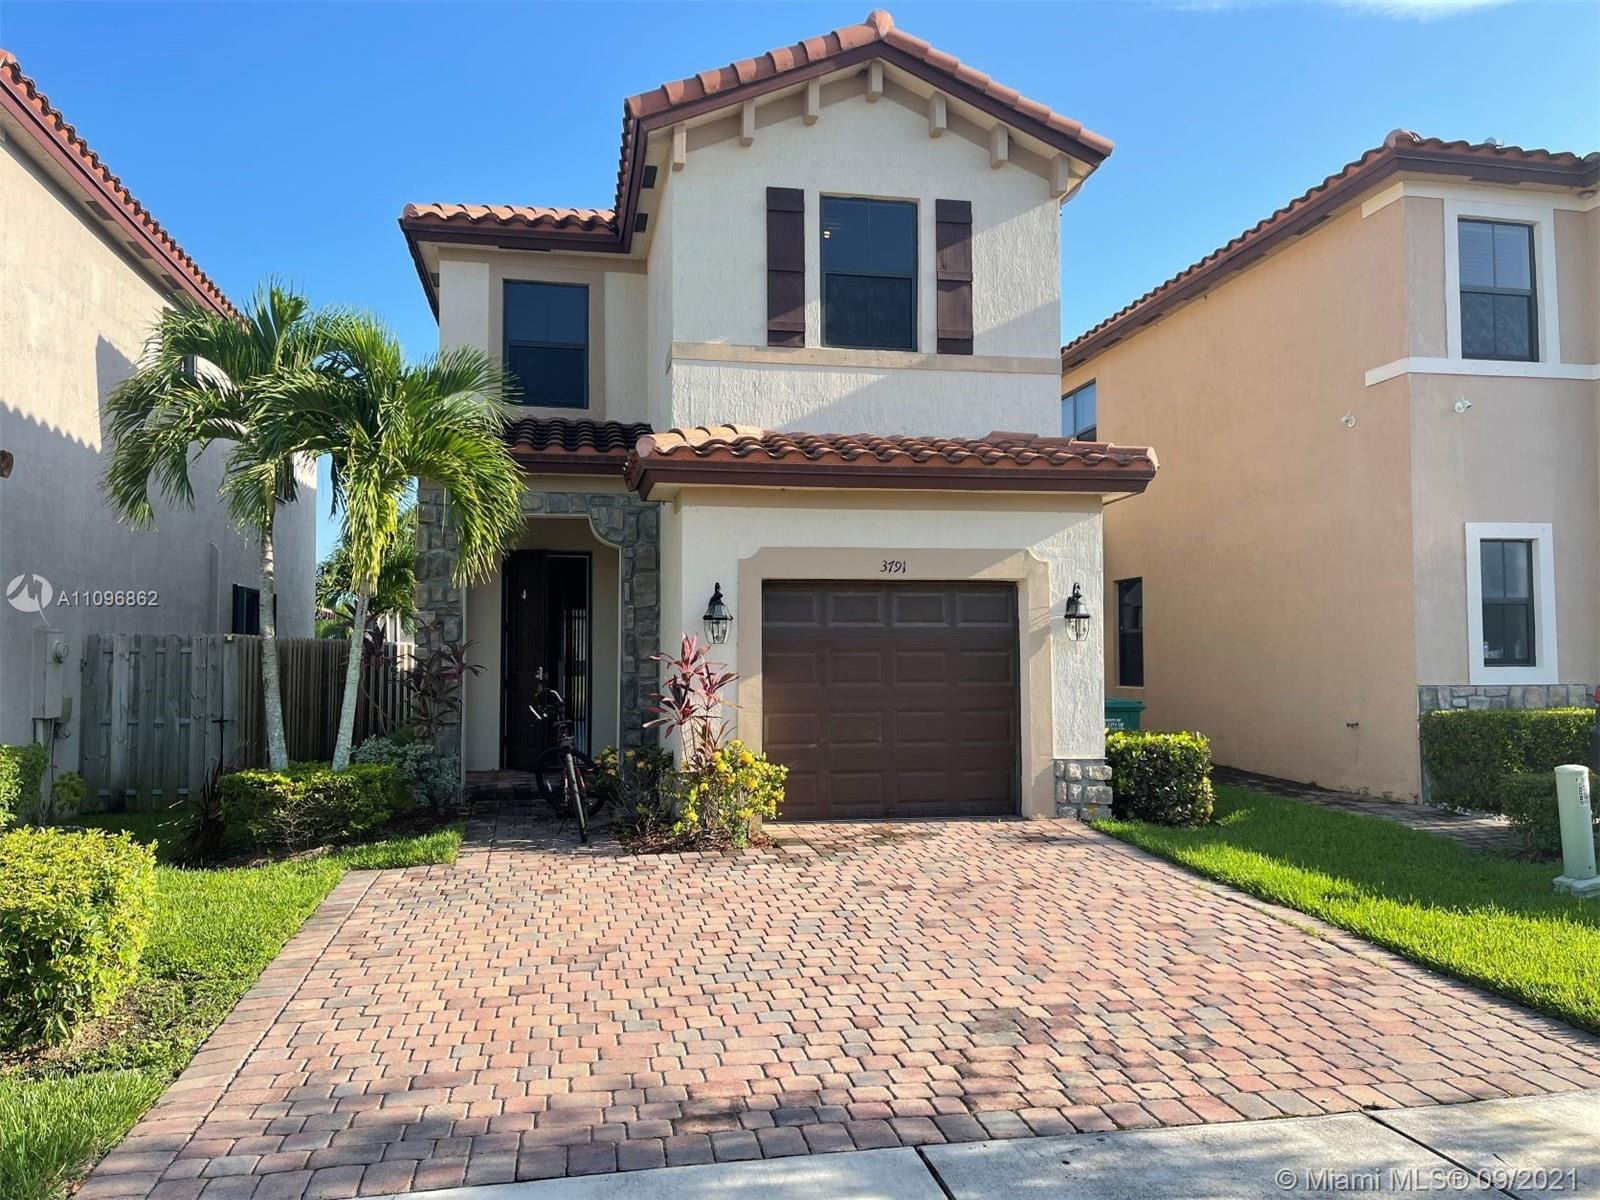 Beautiful lake view single family home located inside the gate community Sierra At Vineyards . 4 bedrooms / 2 bathrooms, 1 bedroom and 1 full bathroom on first floor. Stainless steel appliances . Spectacular club house with community pool and more. A must see !!!